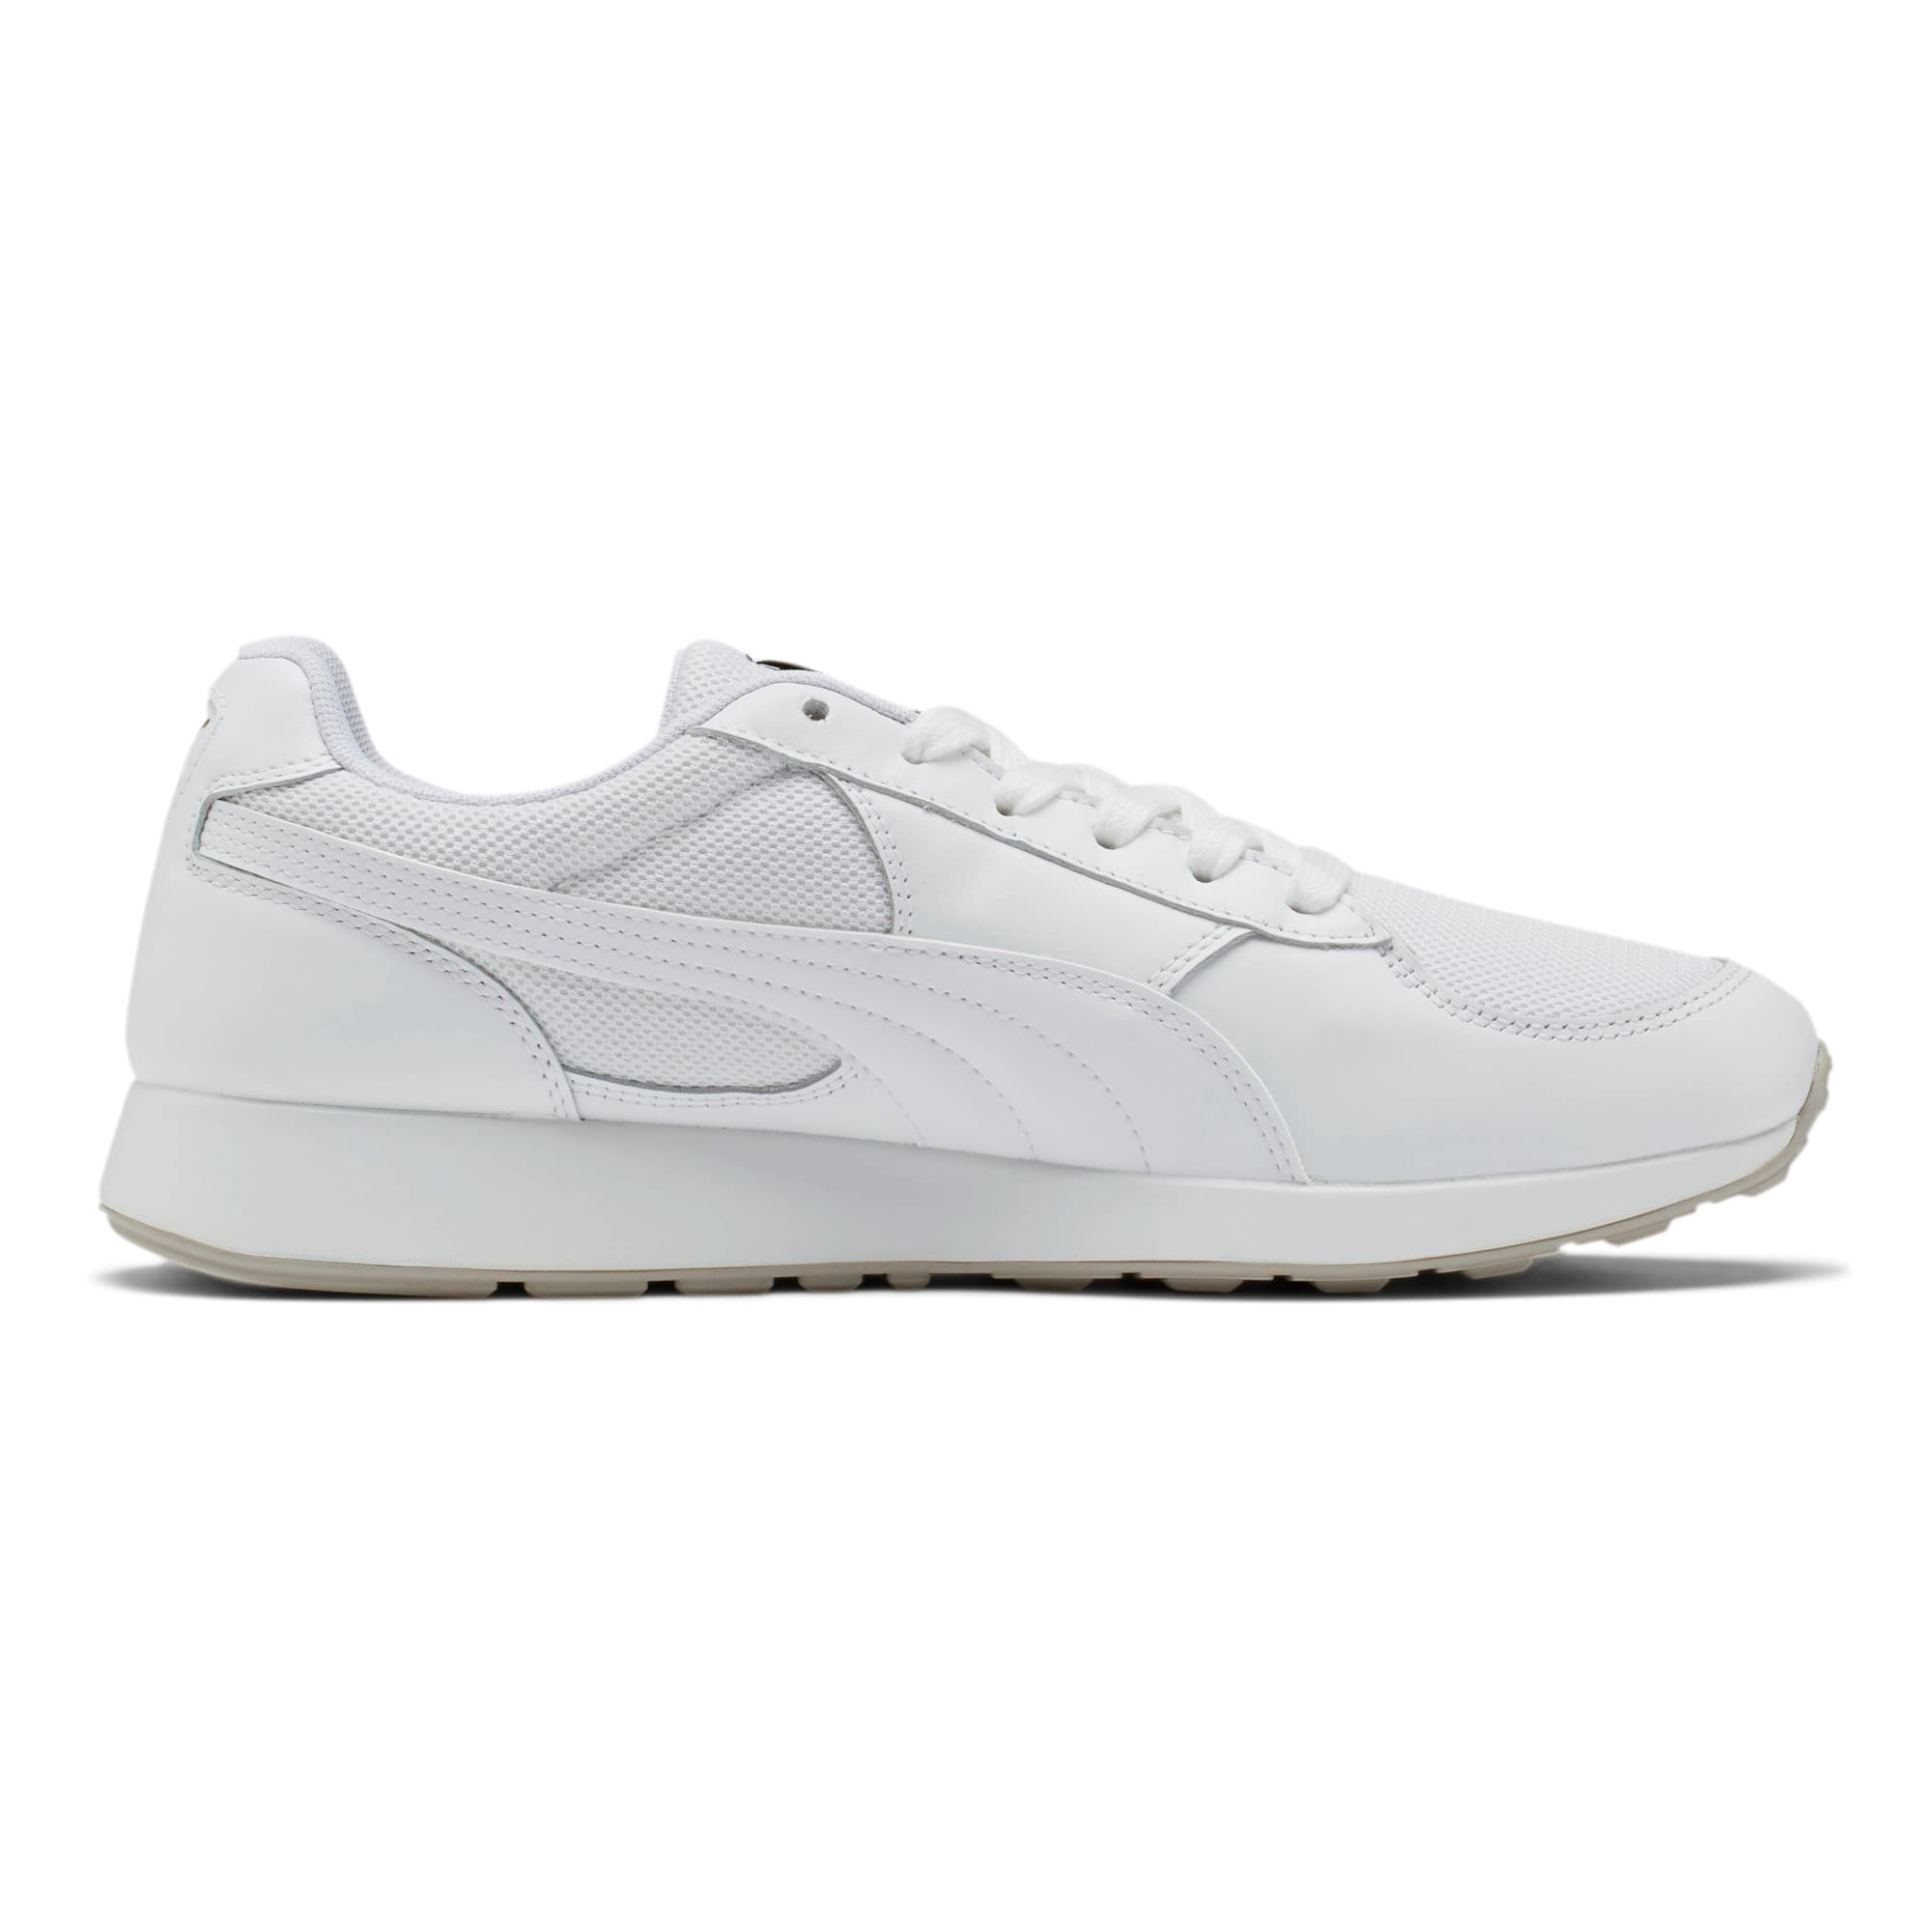 Thumbnail 5 of RS-1 OG CLONE Sneakers, Puma White-Gray Violet, medium